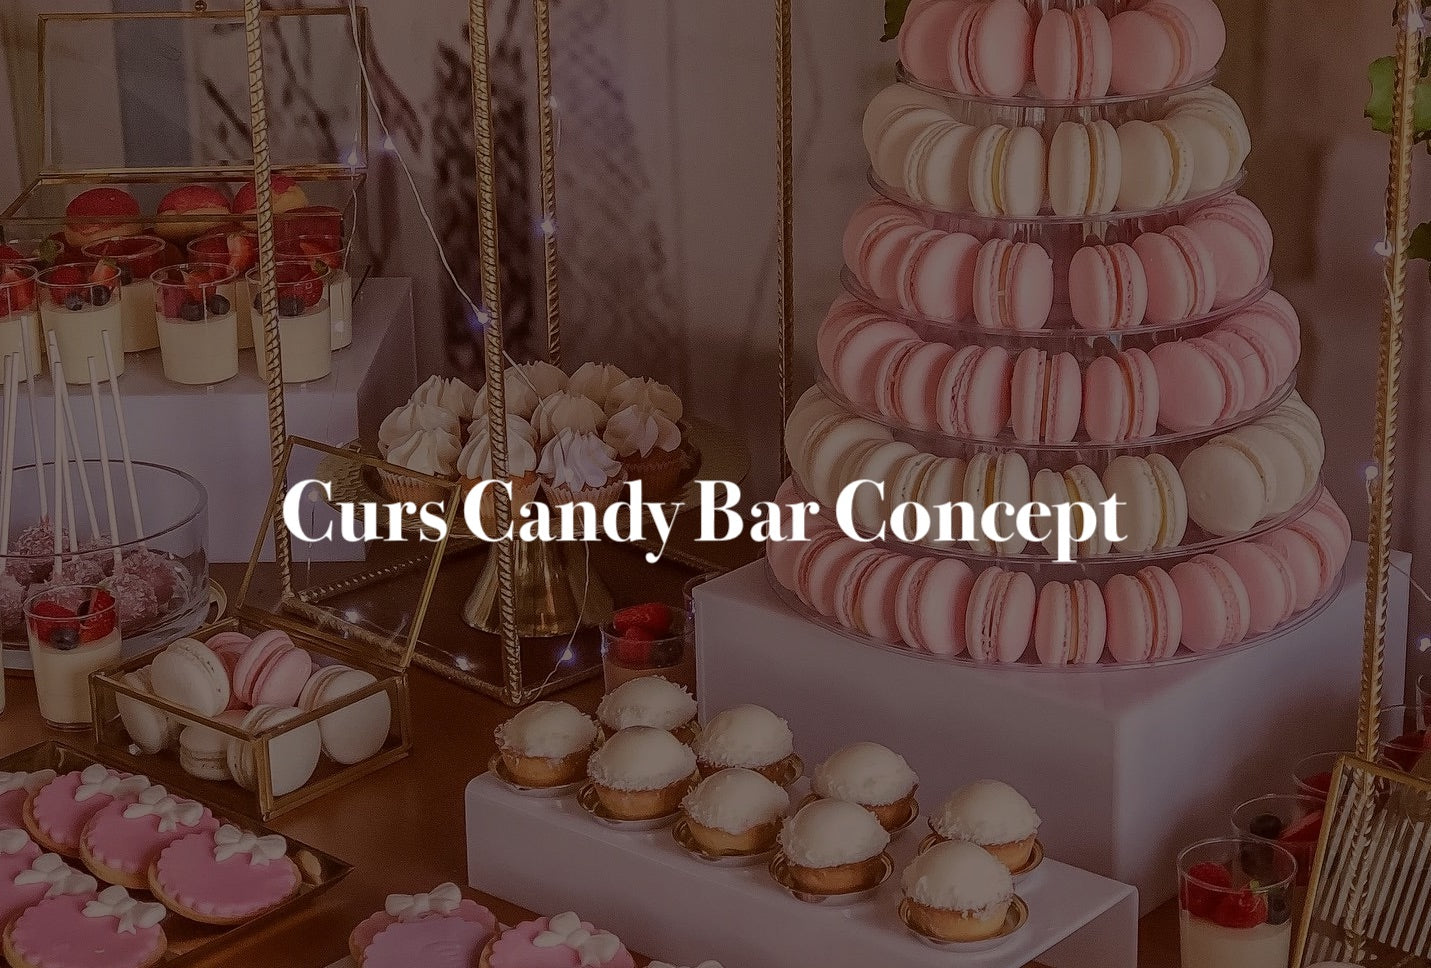 Curs Candy Bar Concept